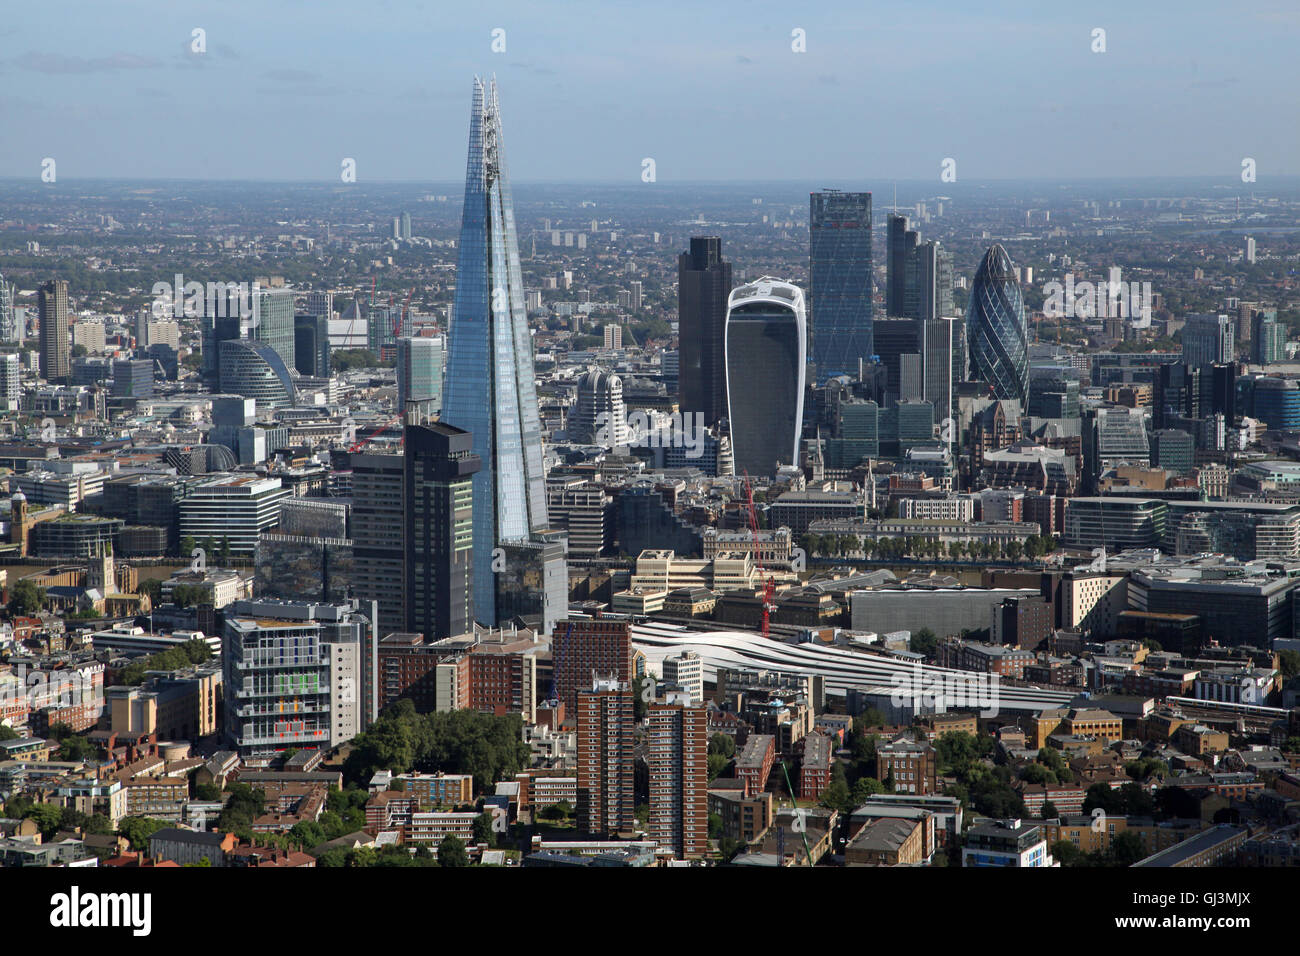 aerial view of the Shard and City of London skyline with Gherkin, Walkie Talkie and Cheese Grater buildings, UK - Stock Image